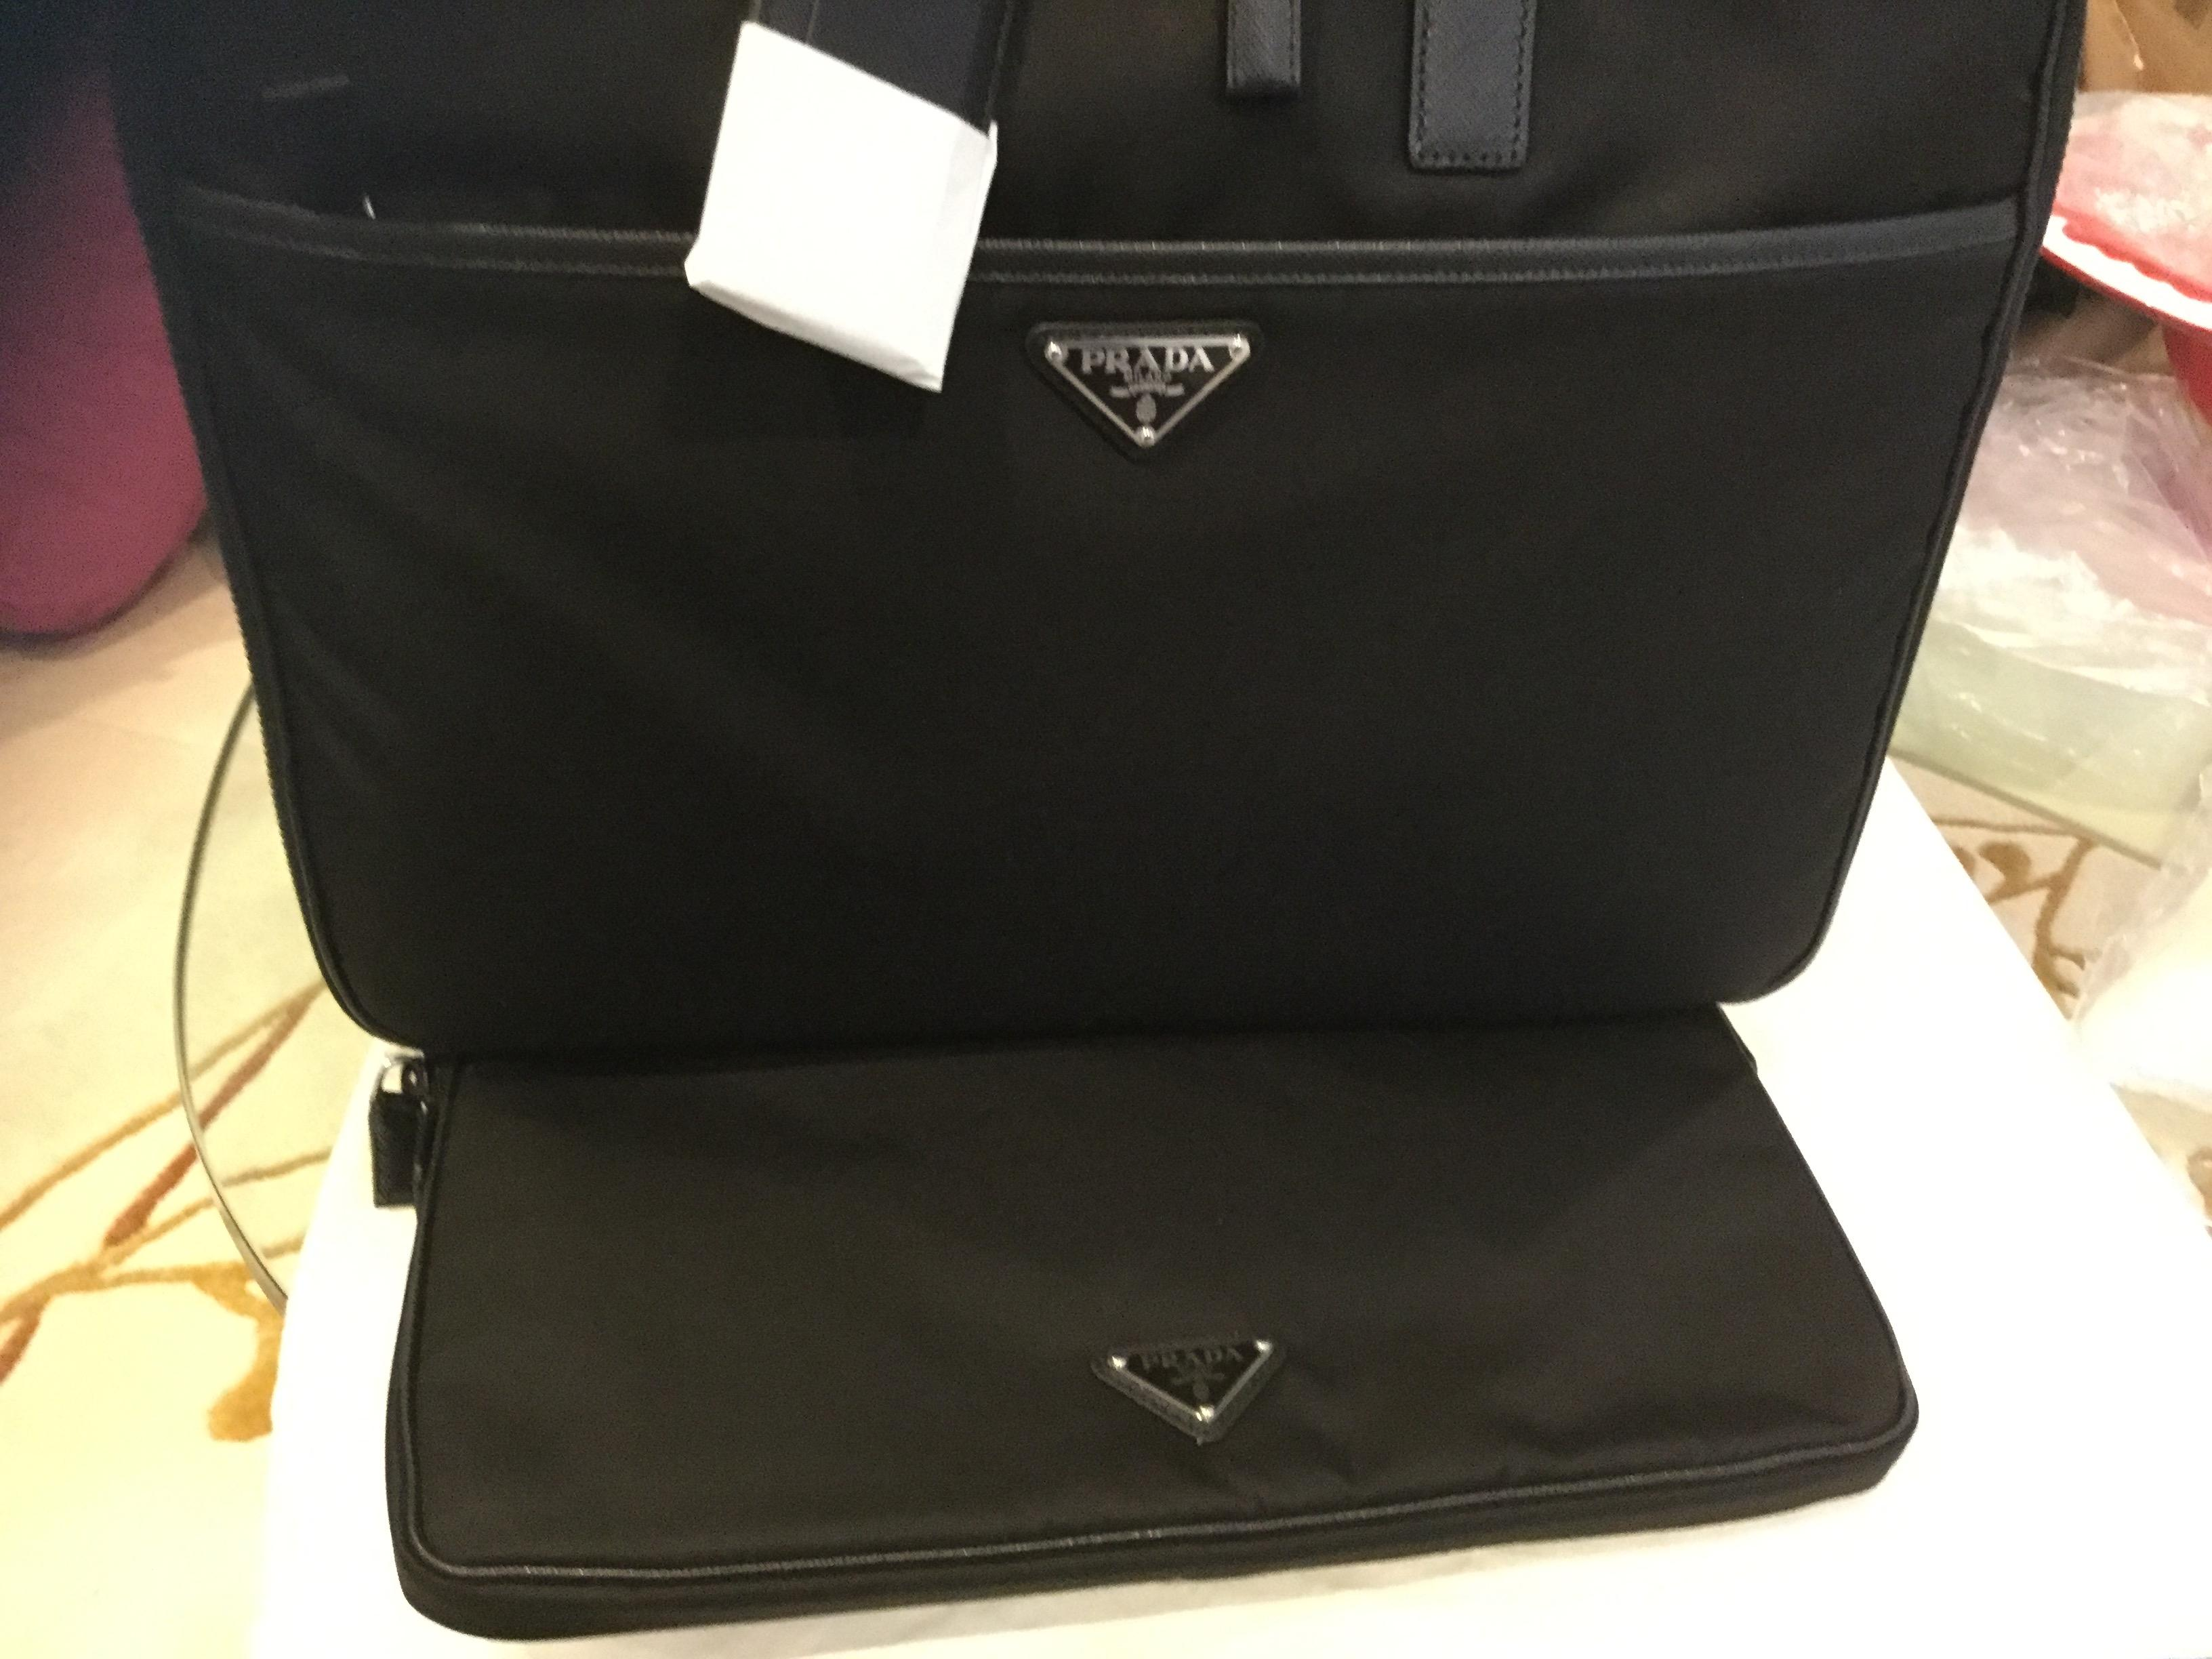 b411e81e09eb low cost prada backpack laptop compartment 0613e 9e996